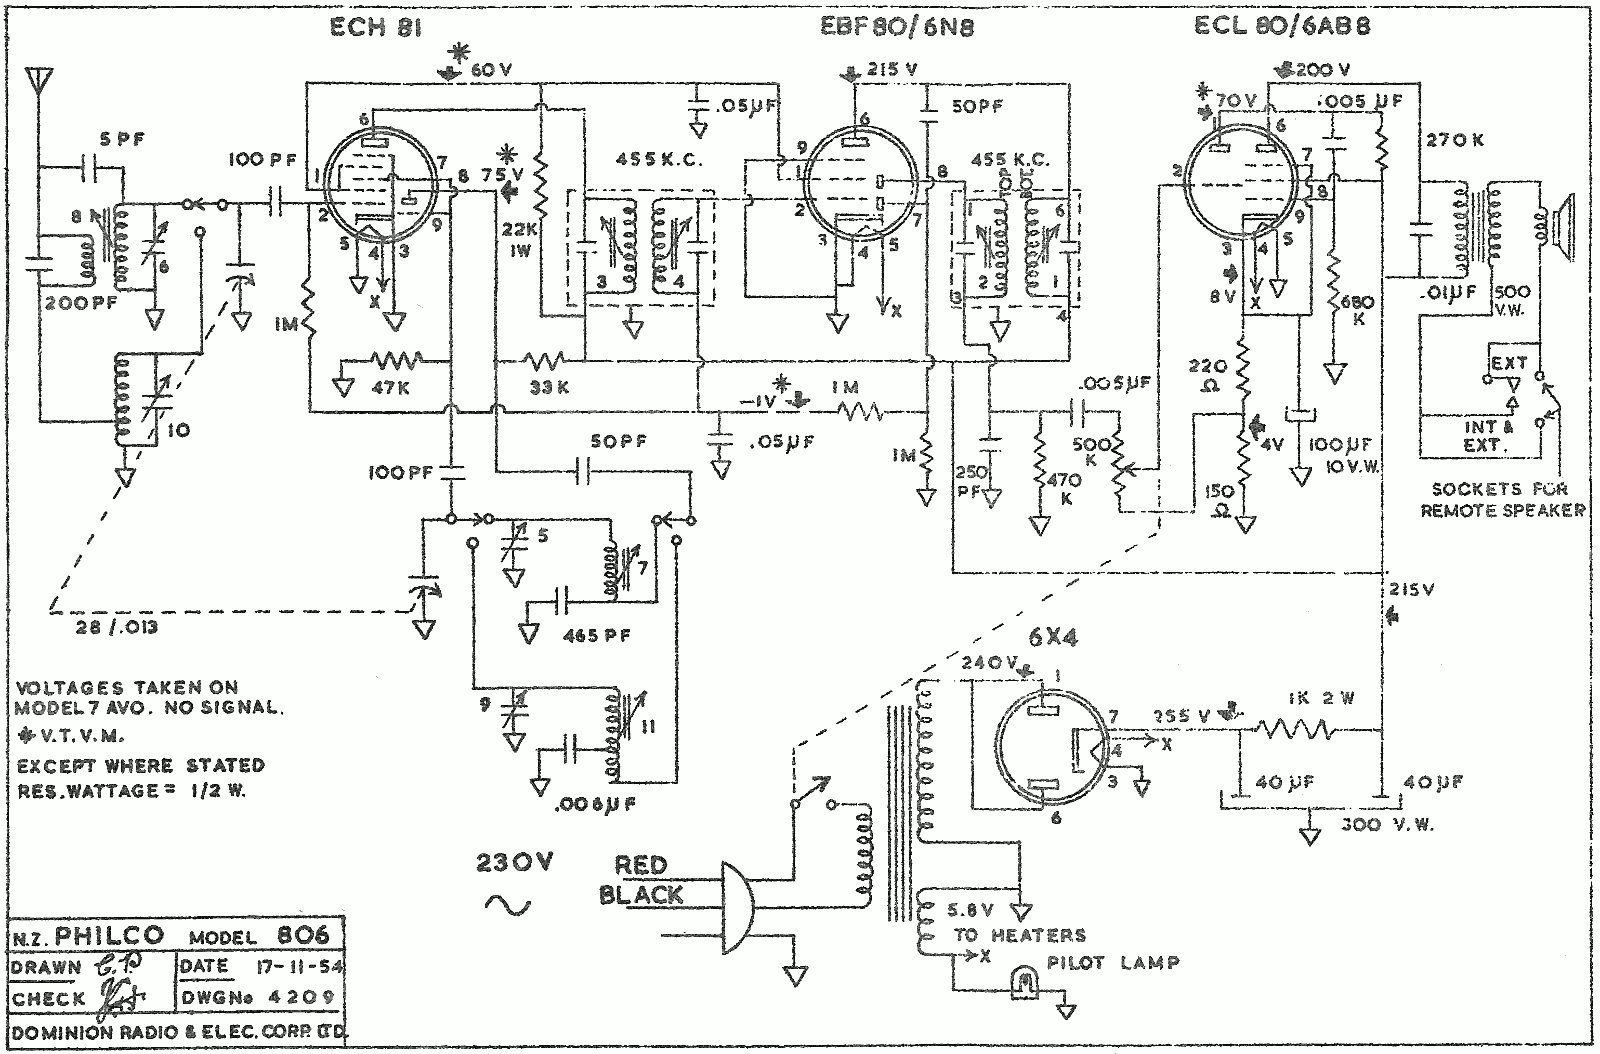 1954 Philco model 806 schematic